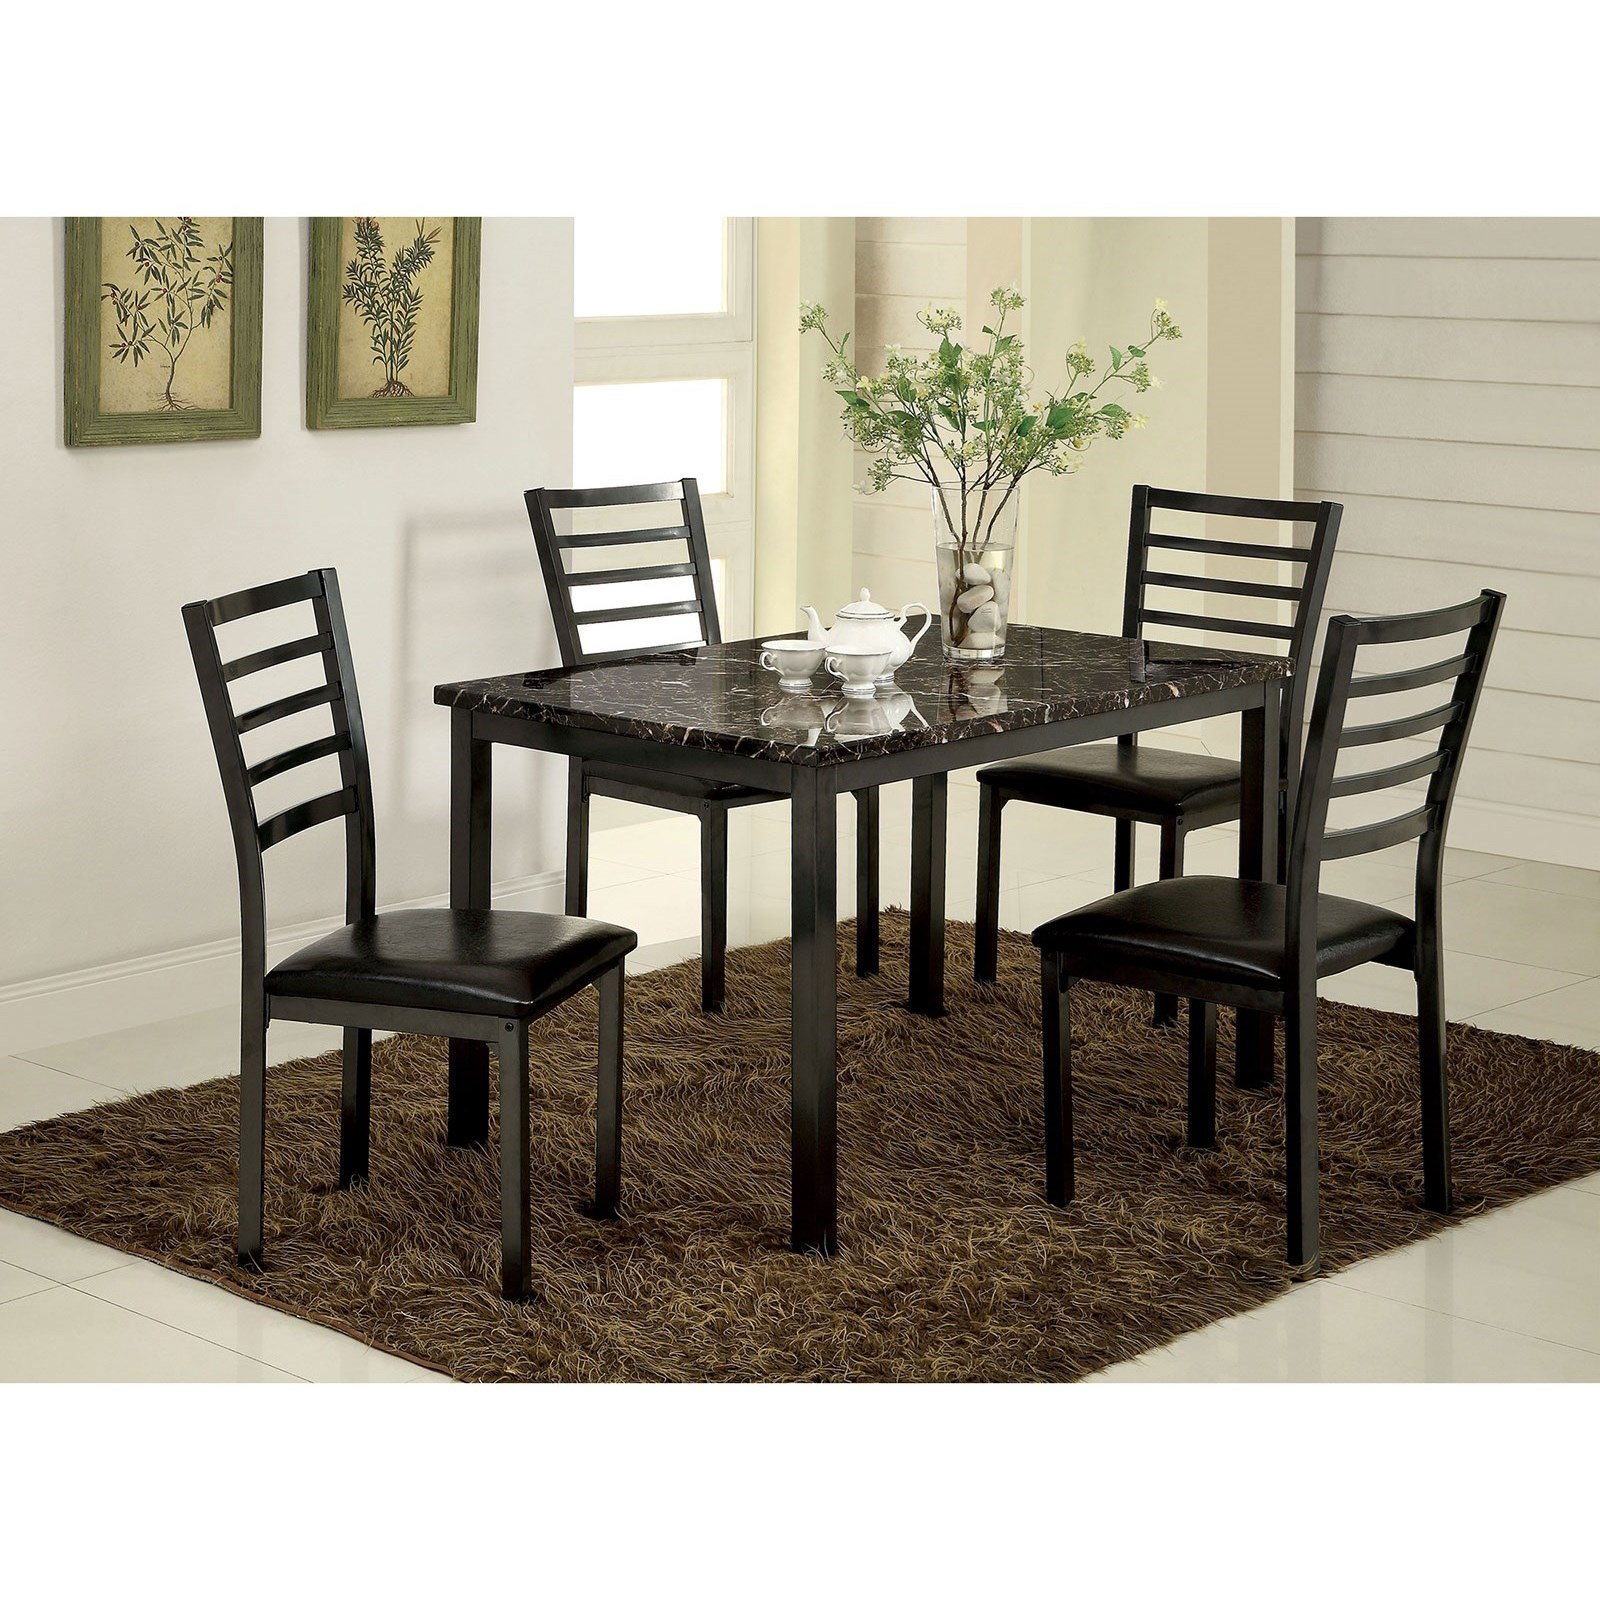 Furniture Of America Foa Colman Cm3615t 48 5pc Kd Dining Set With Four Chairs Del Sol Furniture Dining 5 Piece Sets